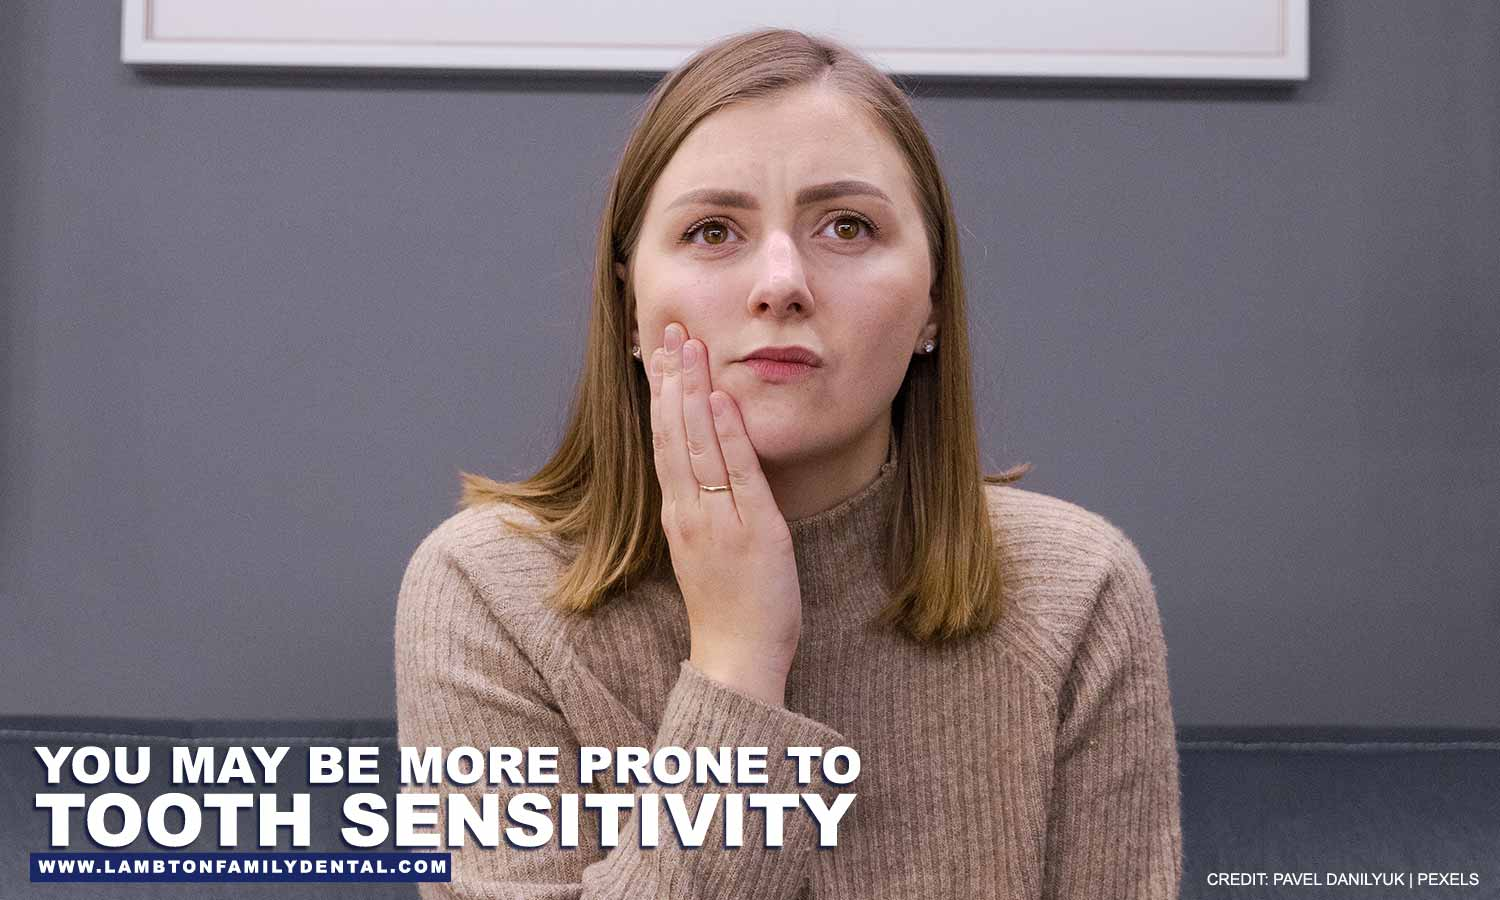 You may be more prone to tooth sensitivity